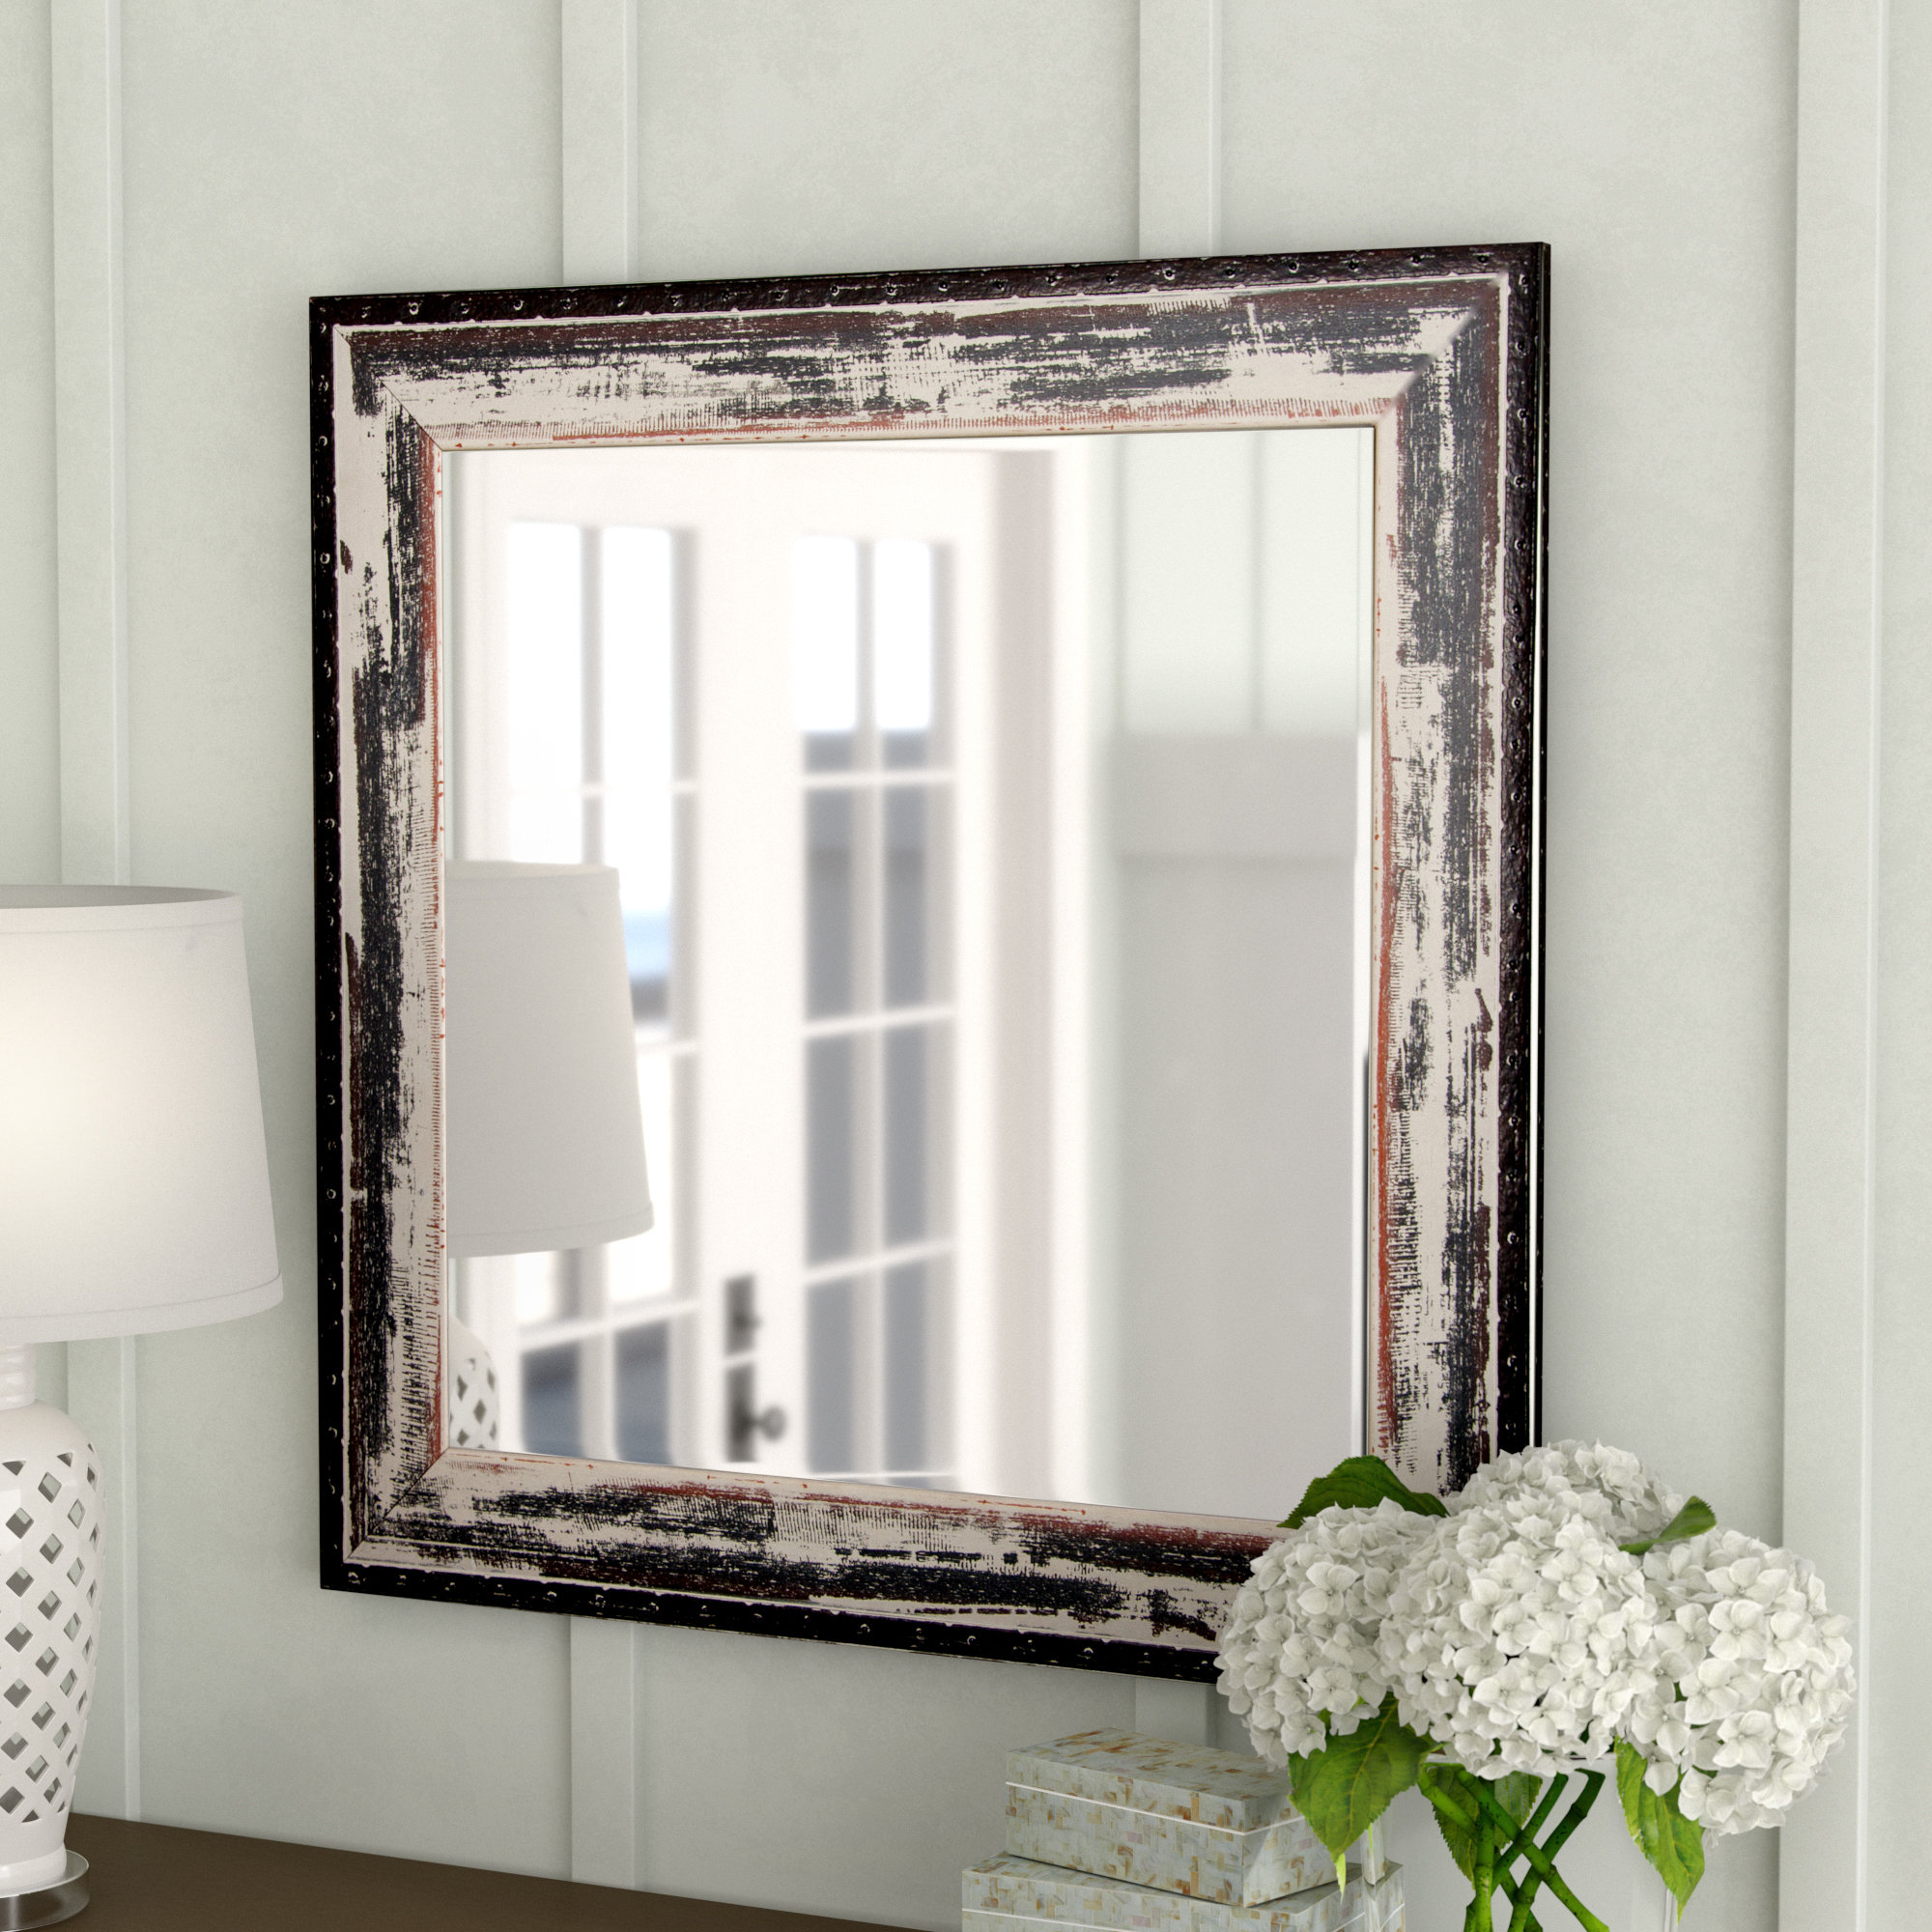 Terwood Modern & Contemporary Wall Mirror In Most Popular Laurel Foundry Modern & Contemporary Accent Mirrors (View 7 of 20)